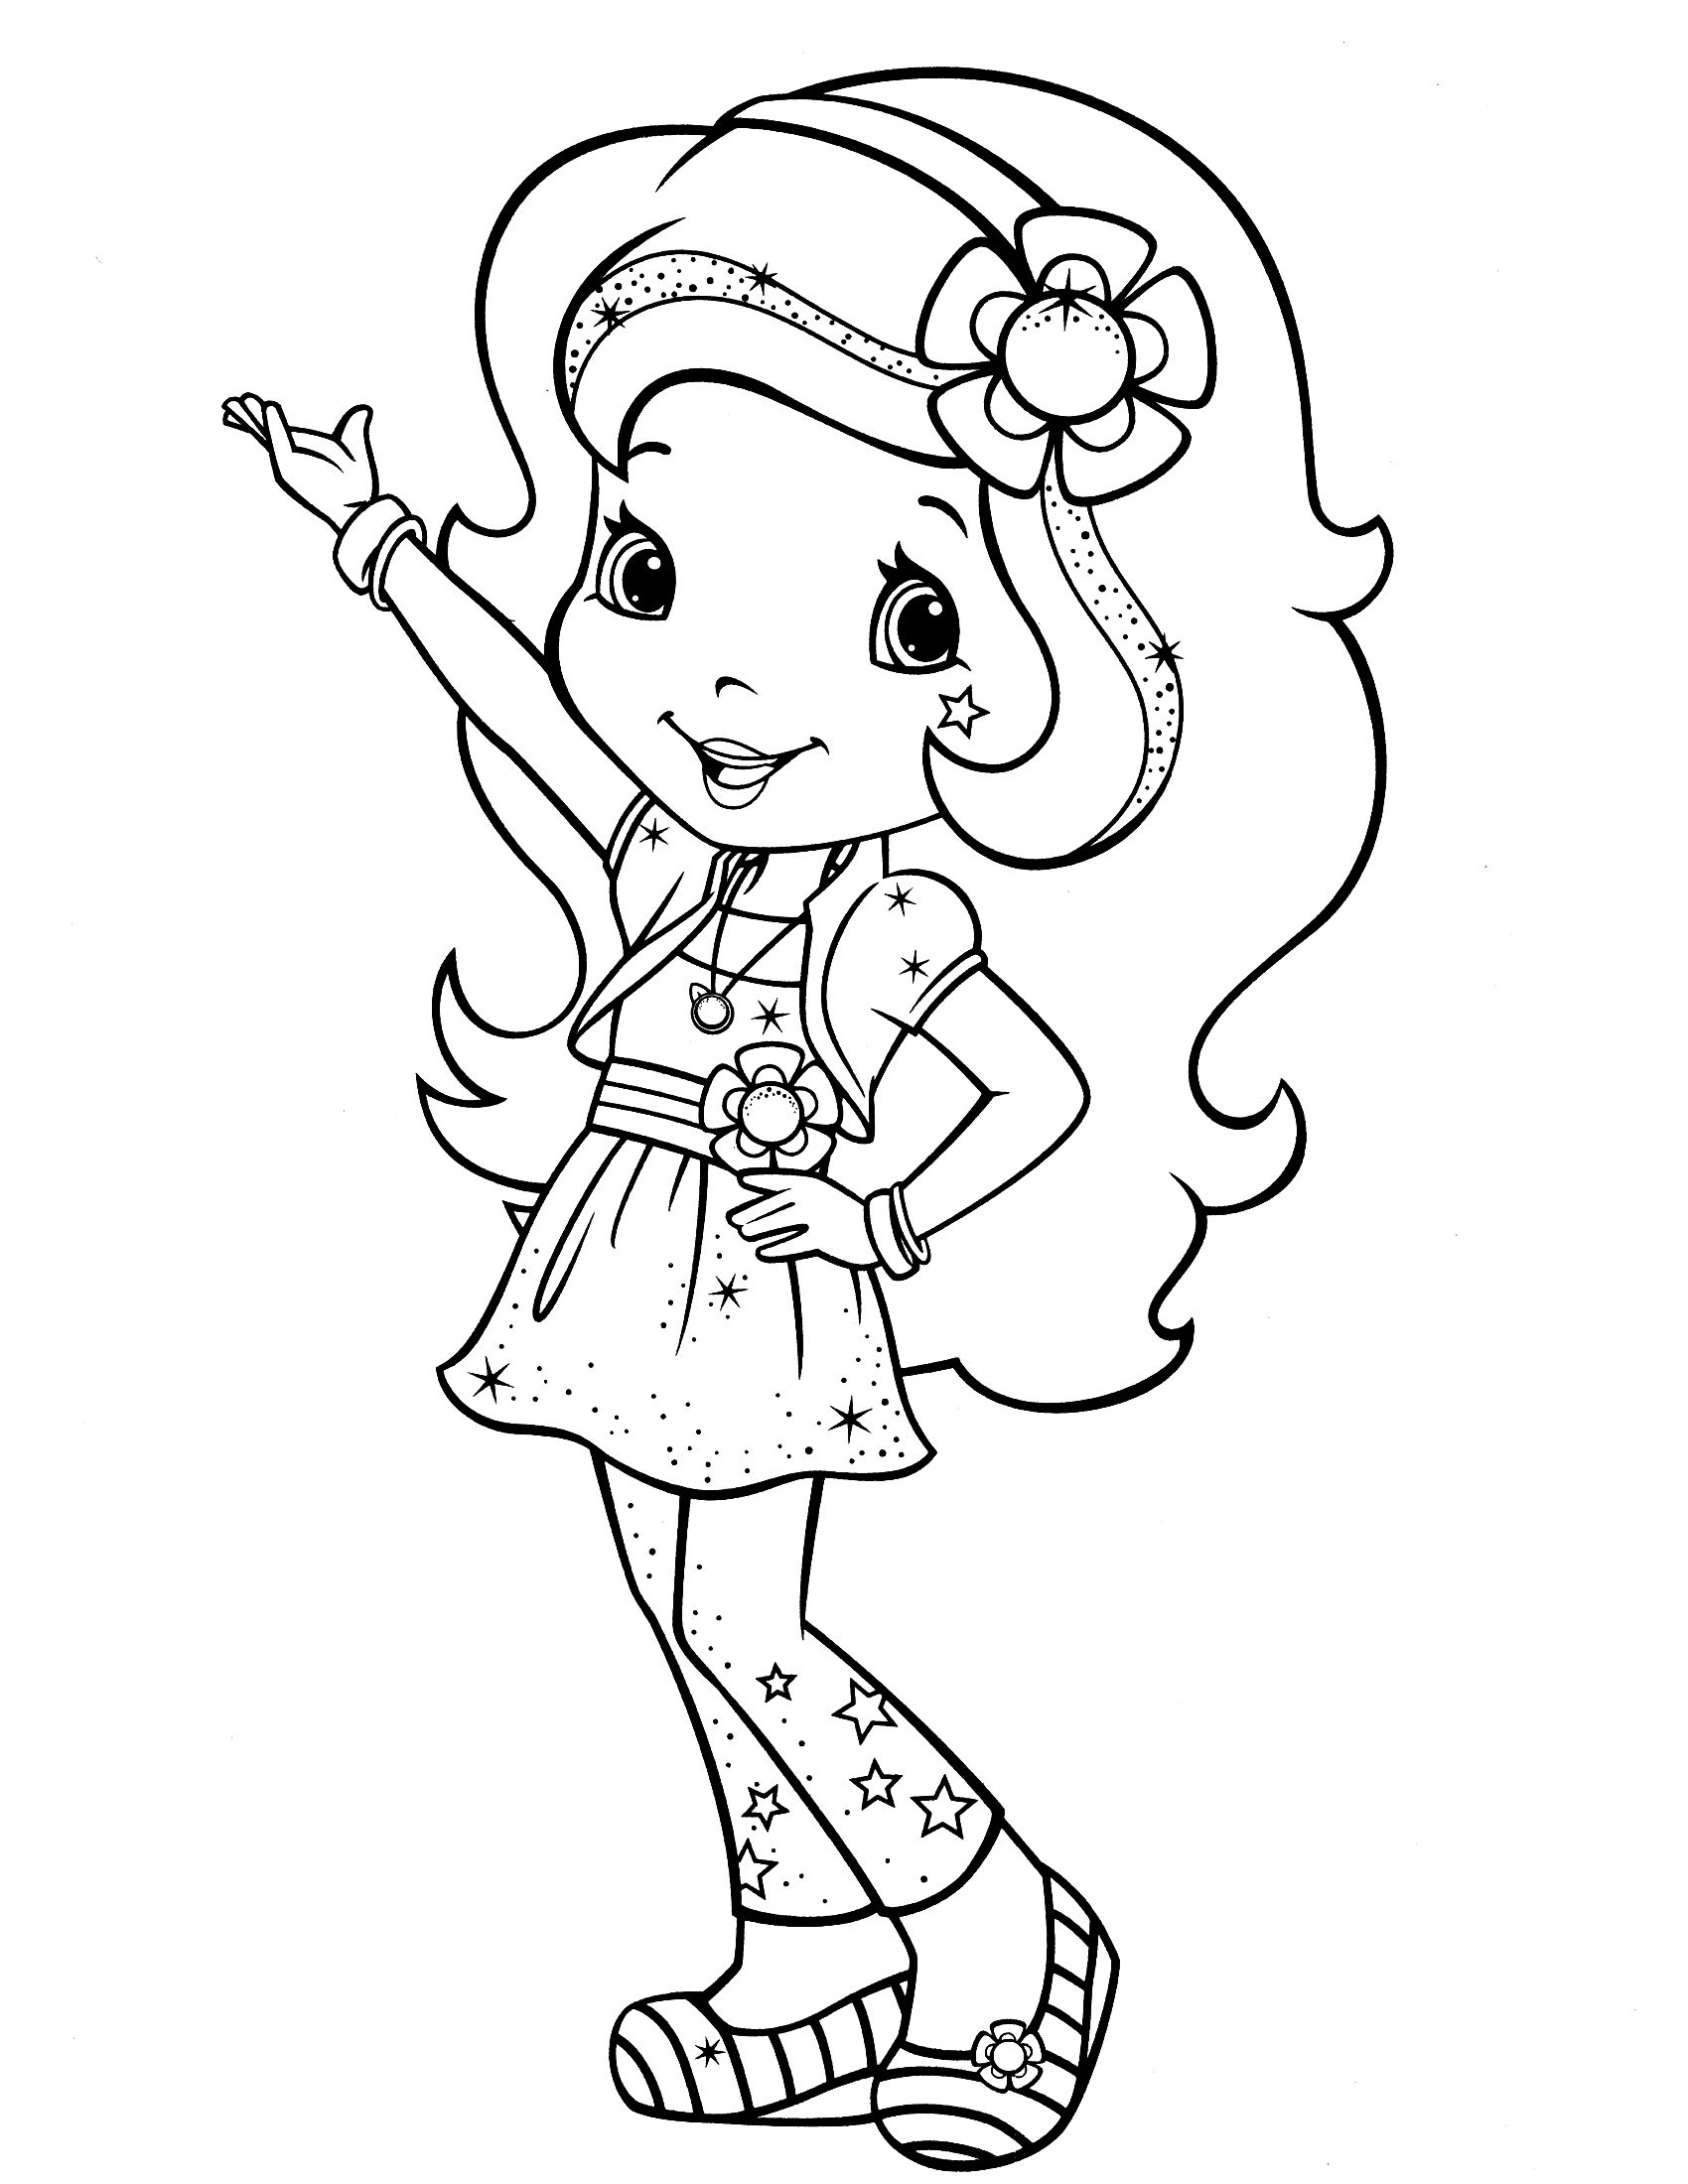 Free Online Strawberry Shortcake Coloring Pages Coloring Pages